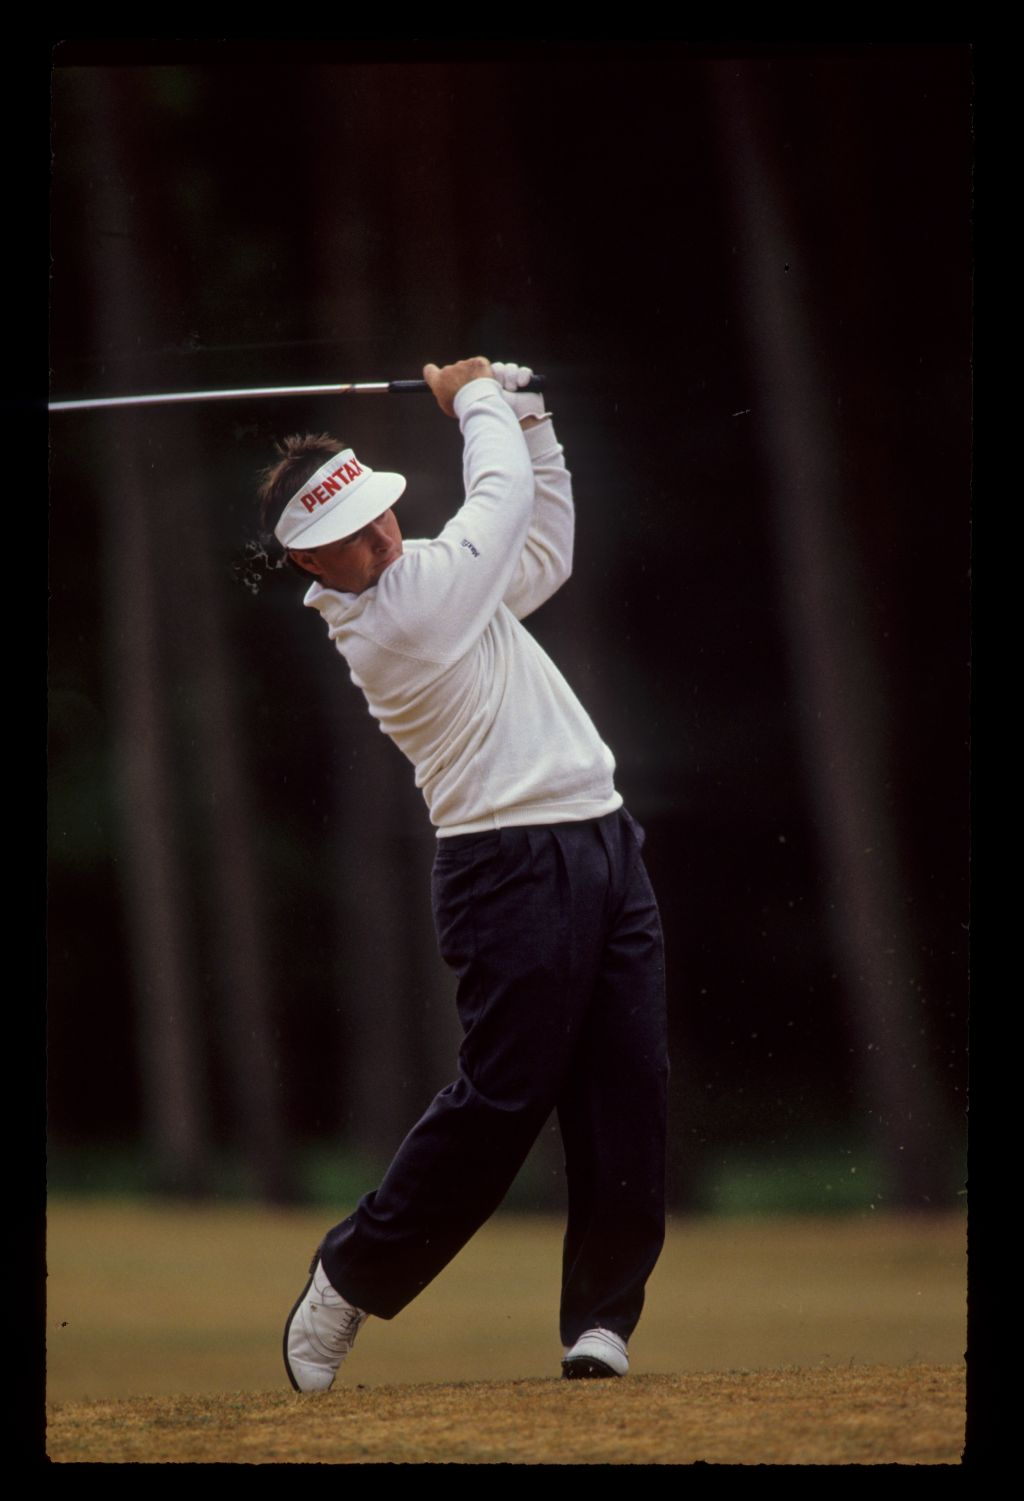 Craig Parry hands high on his way to eighth place during the 1990 Dunhill British Masters